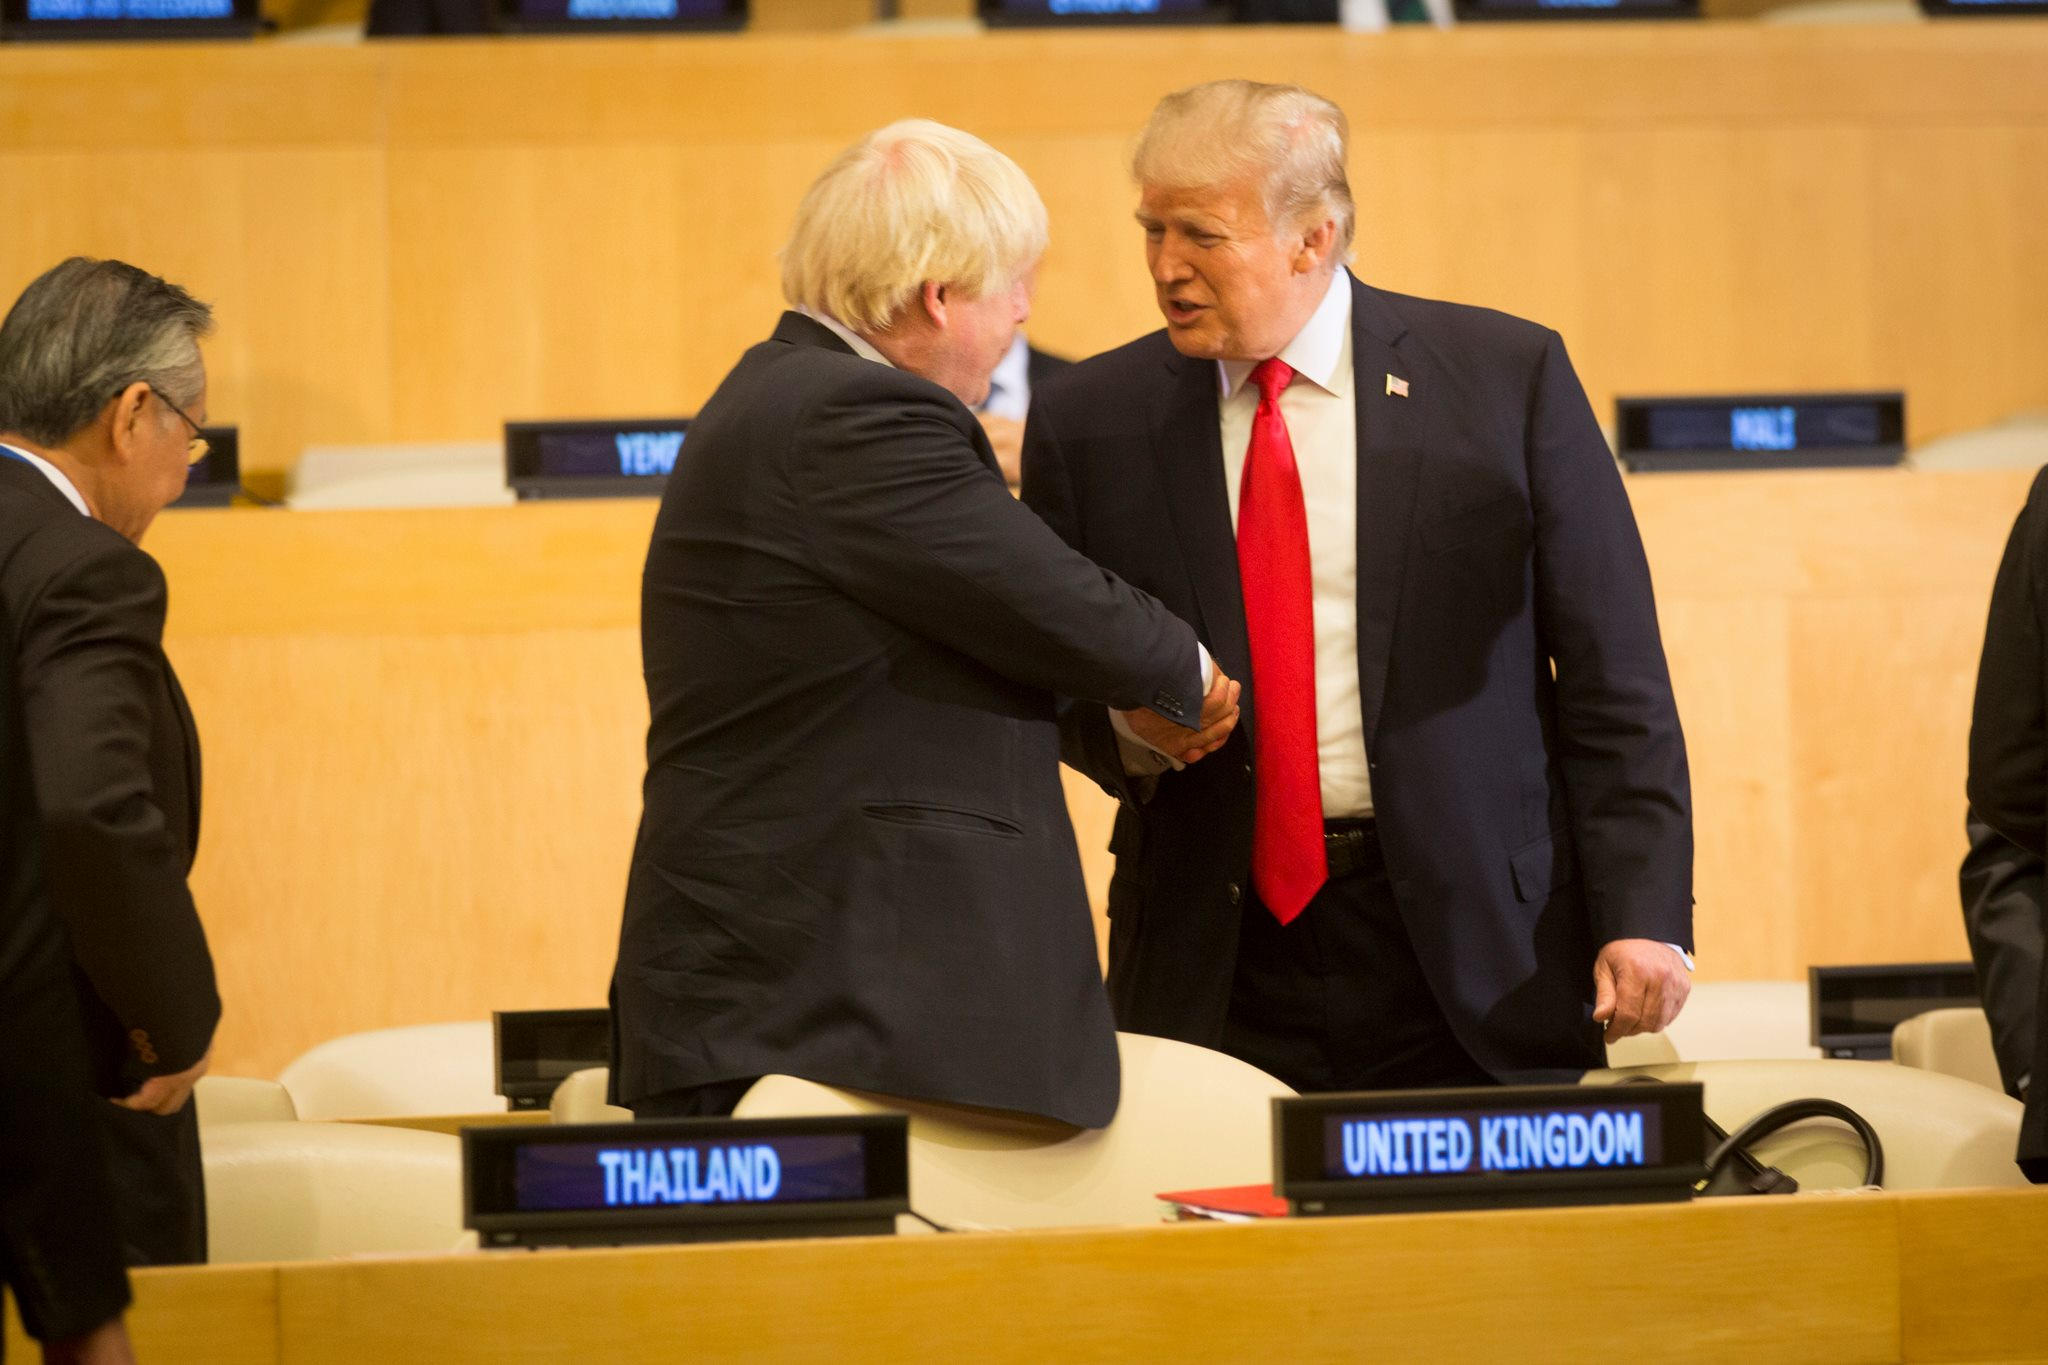 President_Donald_J._Trump_and_the_British_Secretary_of_State_for_Foreign_and_Commonwealth_Affairs_Boris_Johnson_(37425398262)